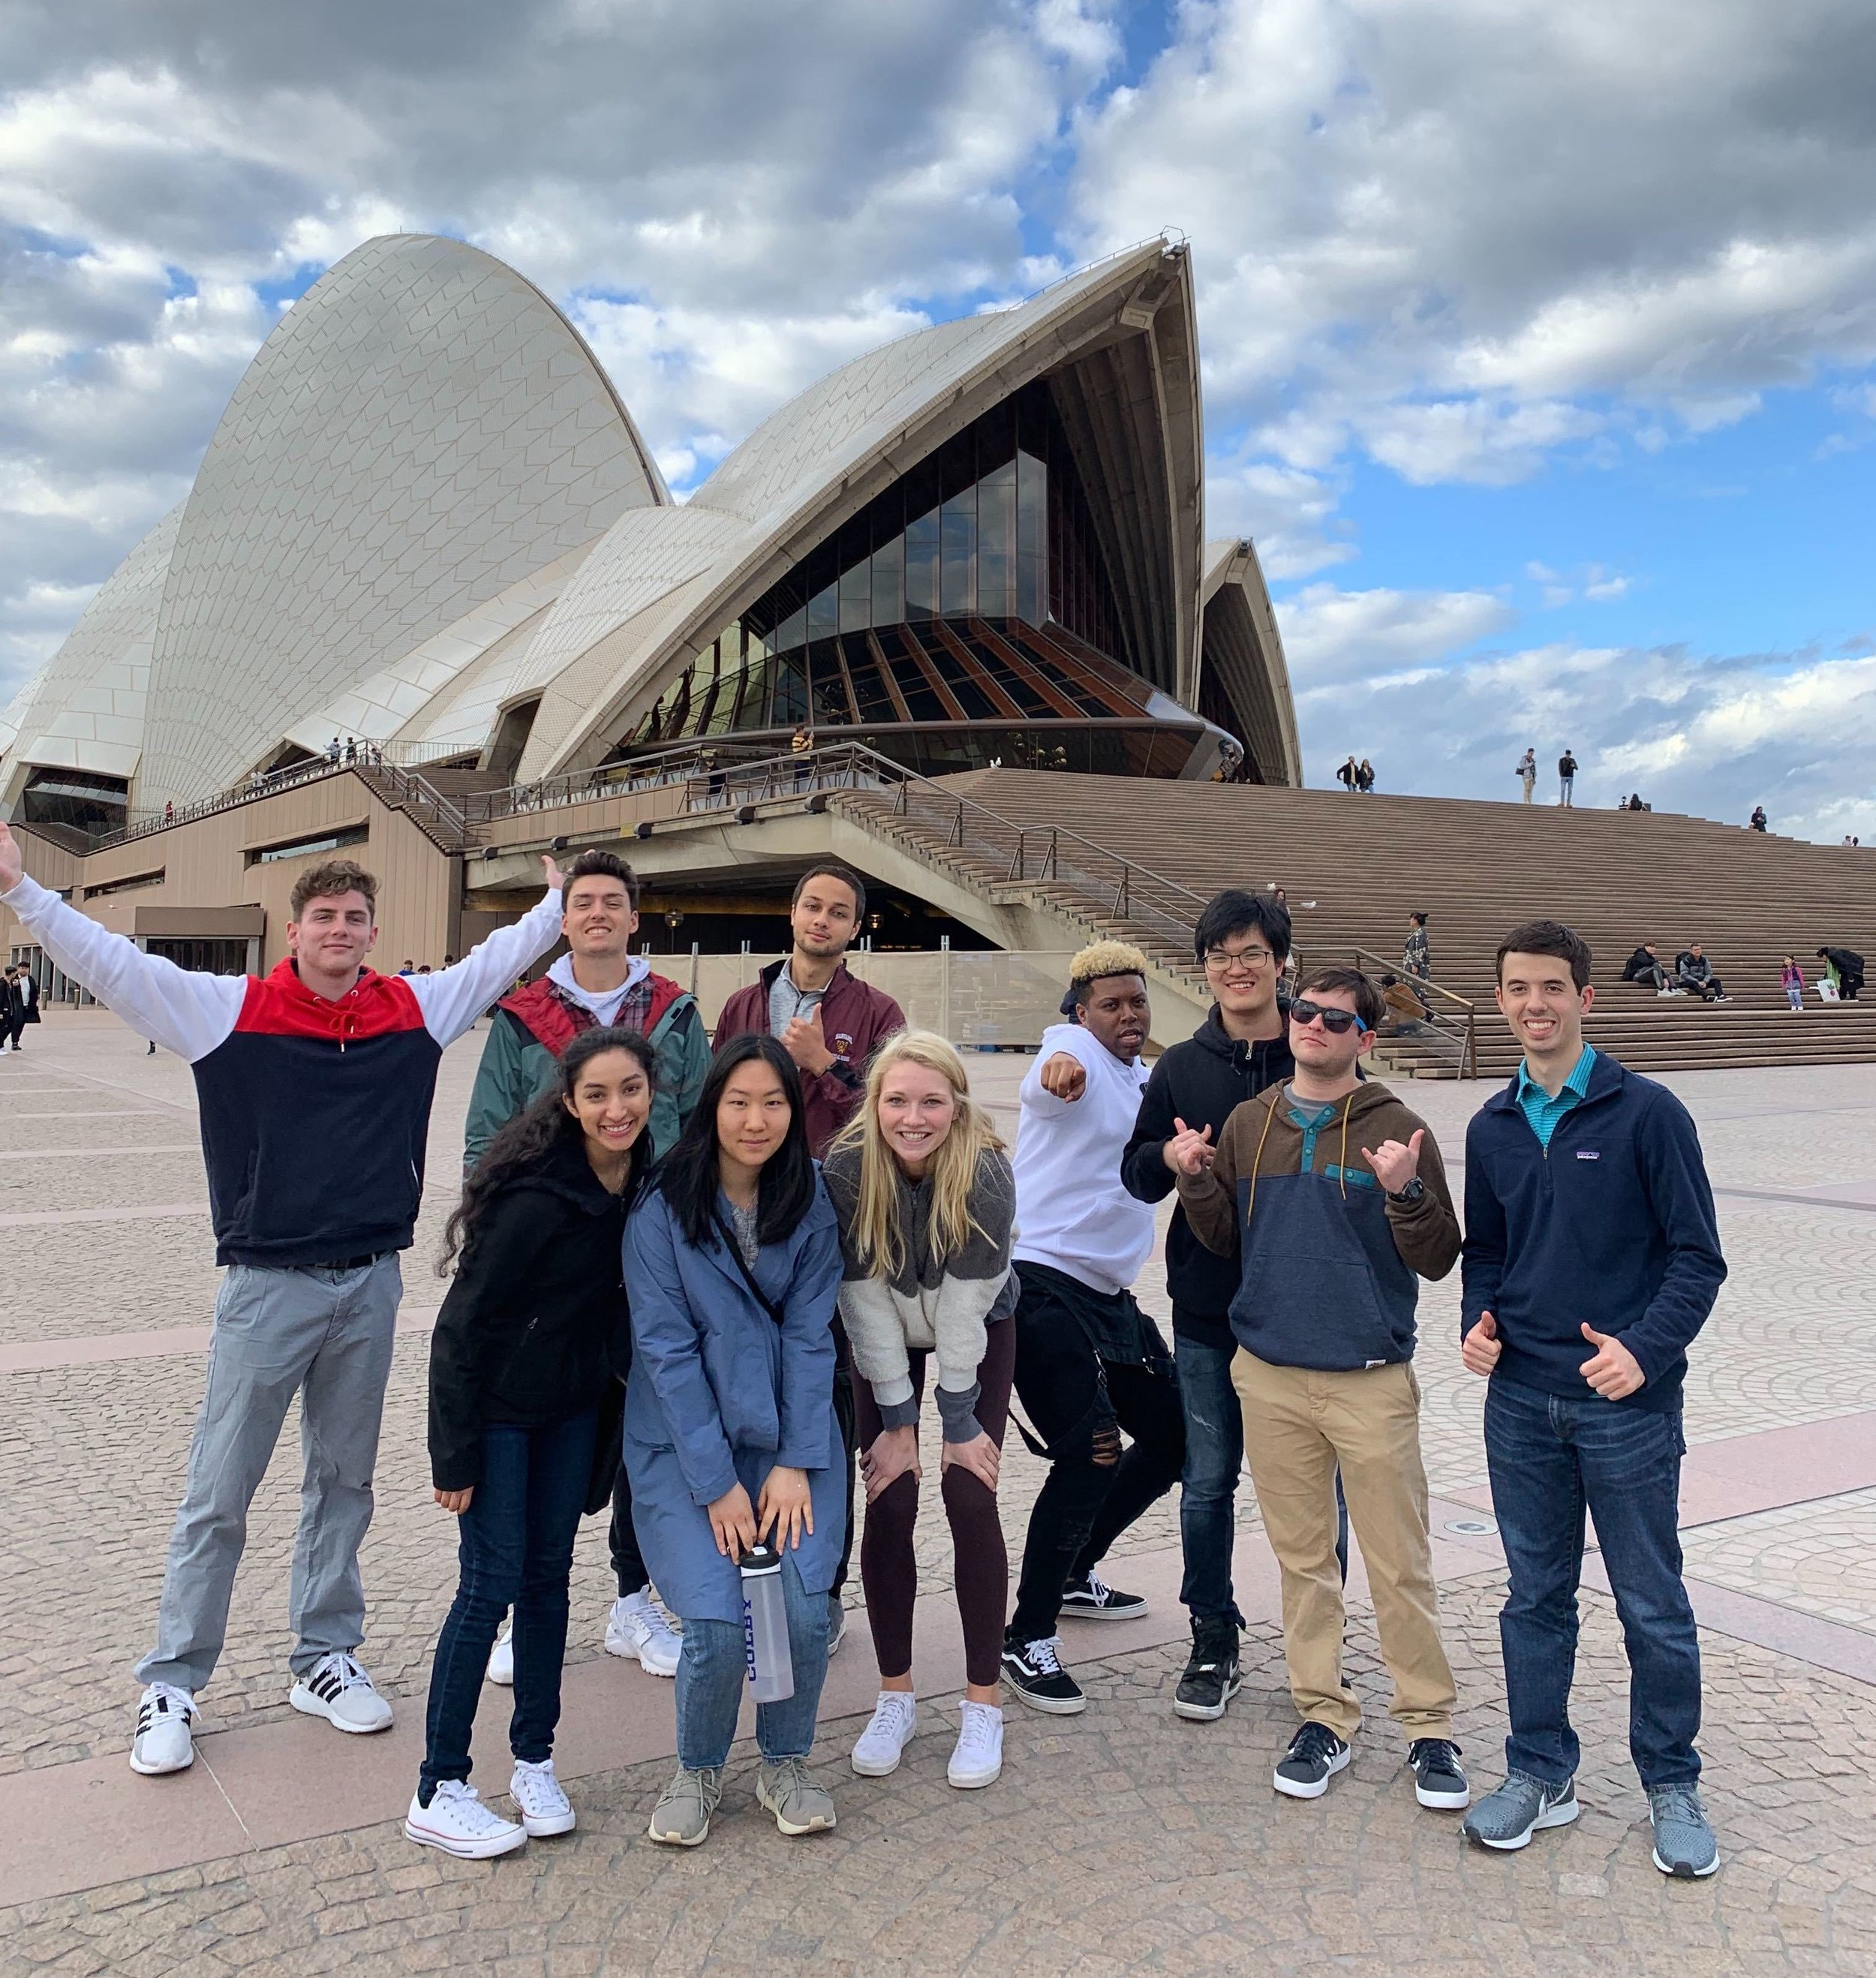 Samina poses in front of the iconic Sydney Opera House with the rest of the 2019 Sage Corps Sydney Summer Cohort.